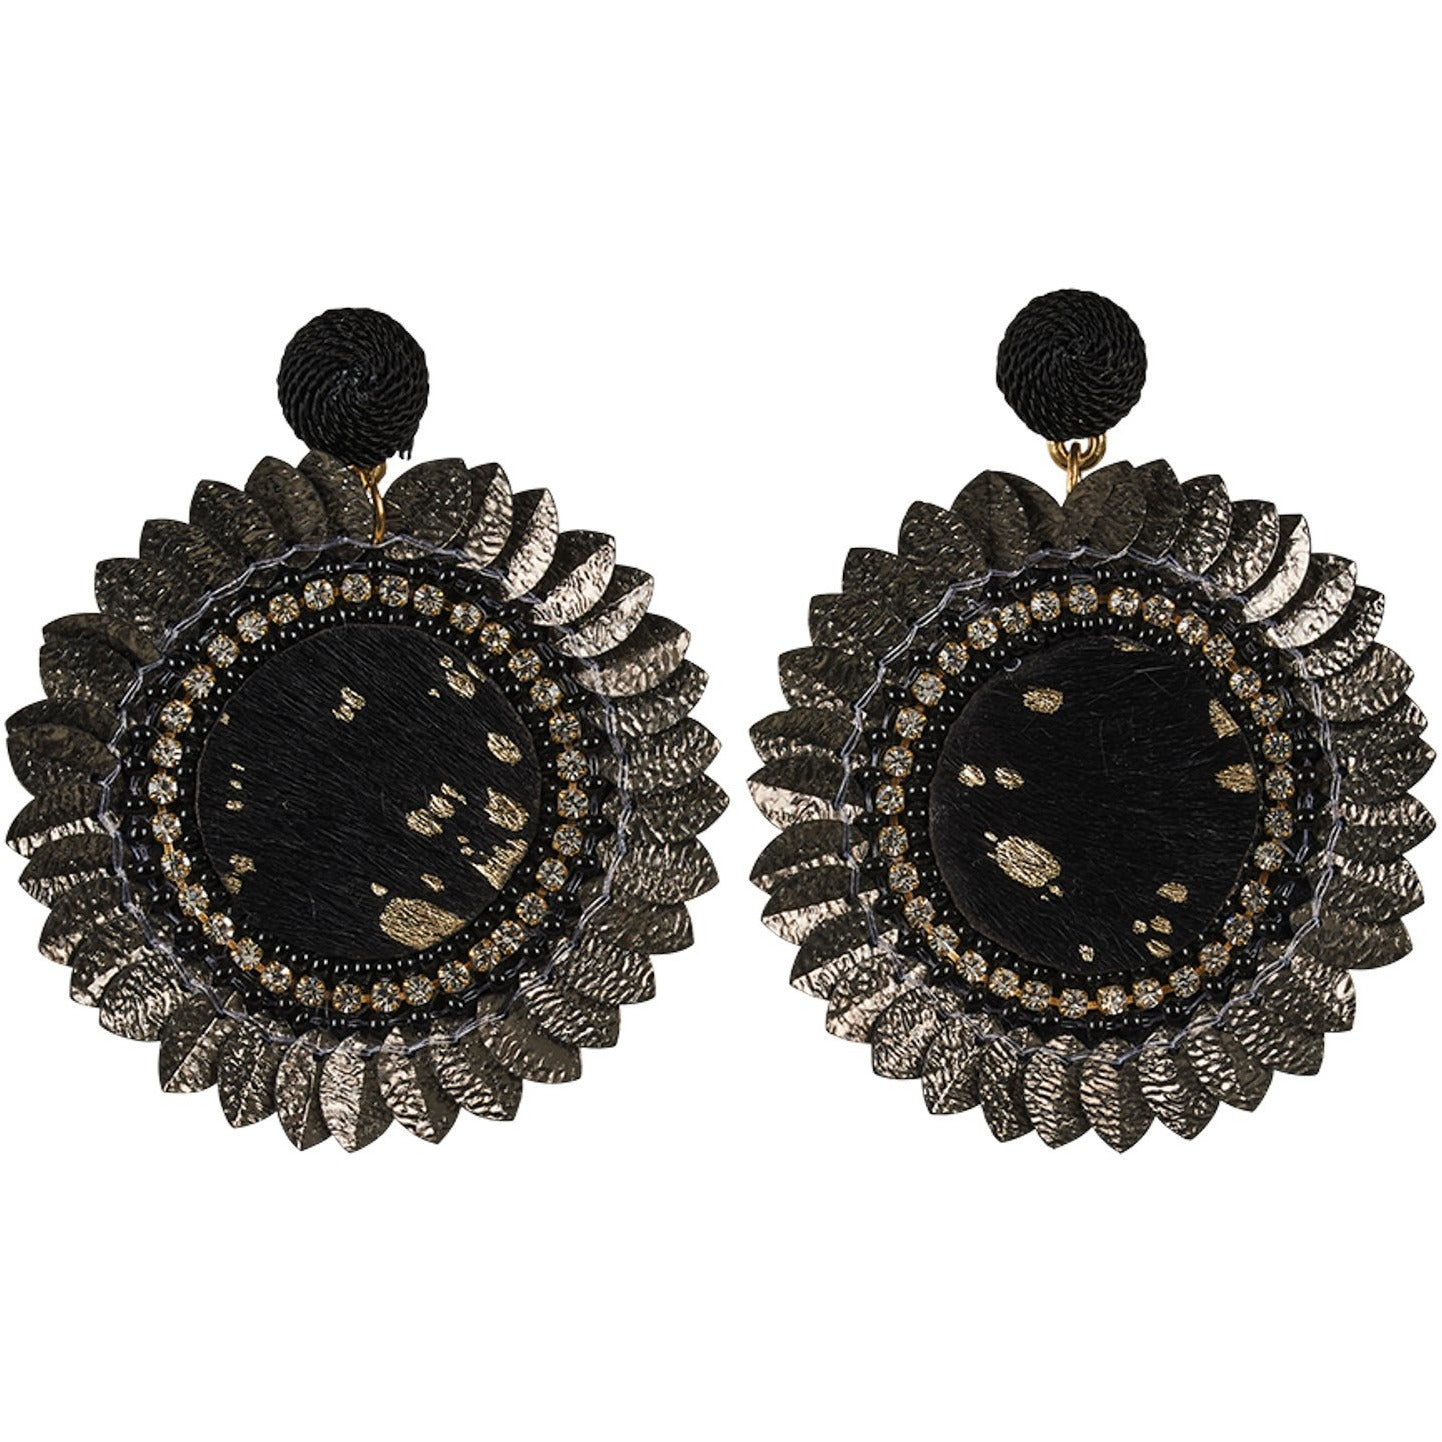 eb&ive Tata Flora Earrings in Black